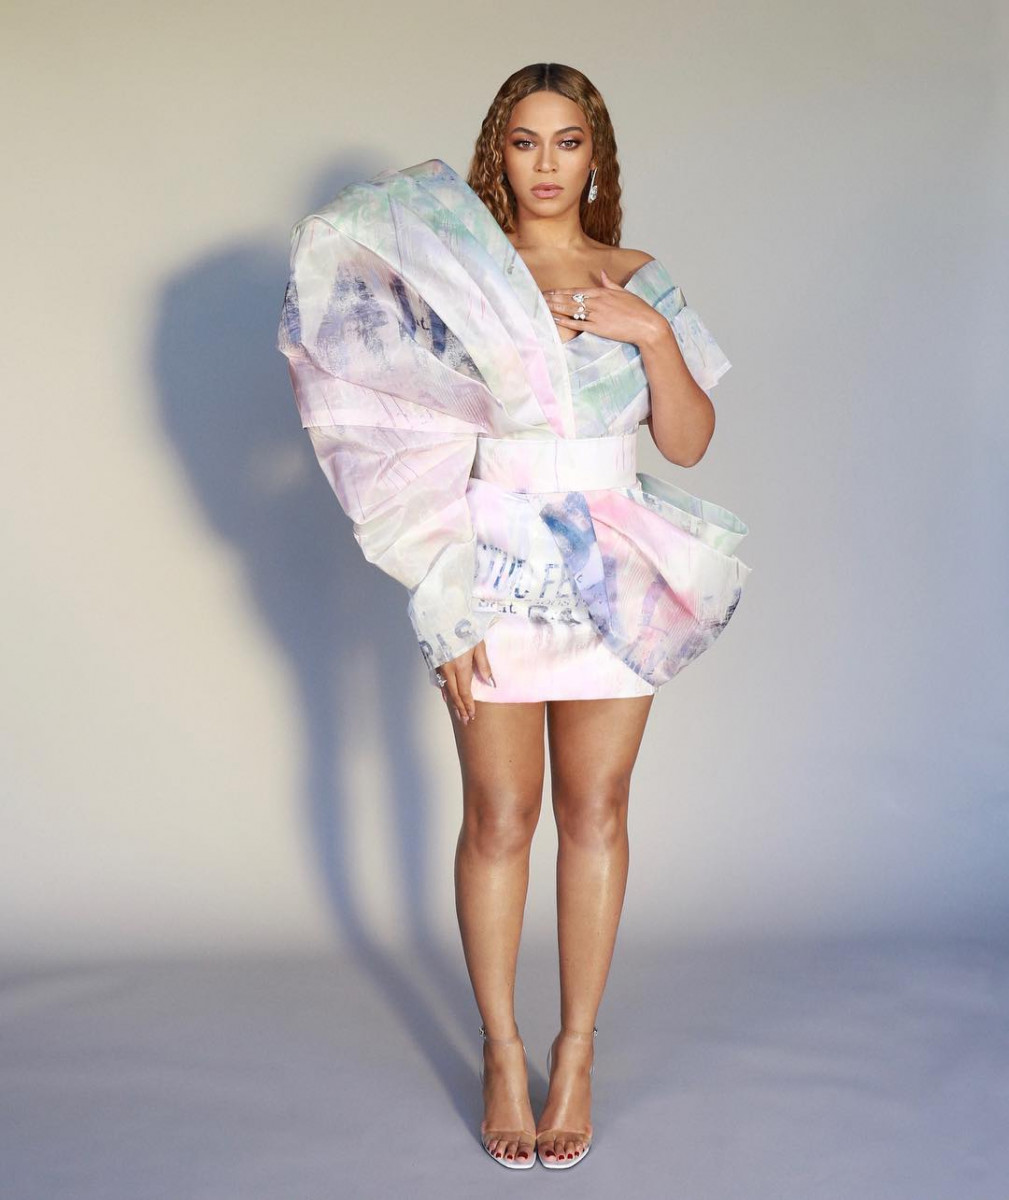 Image result for Beyonce Knowles 2019 hd